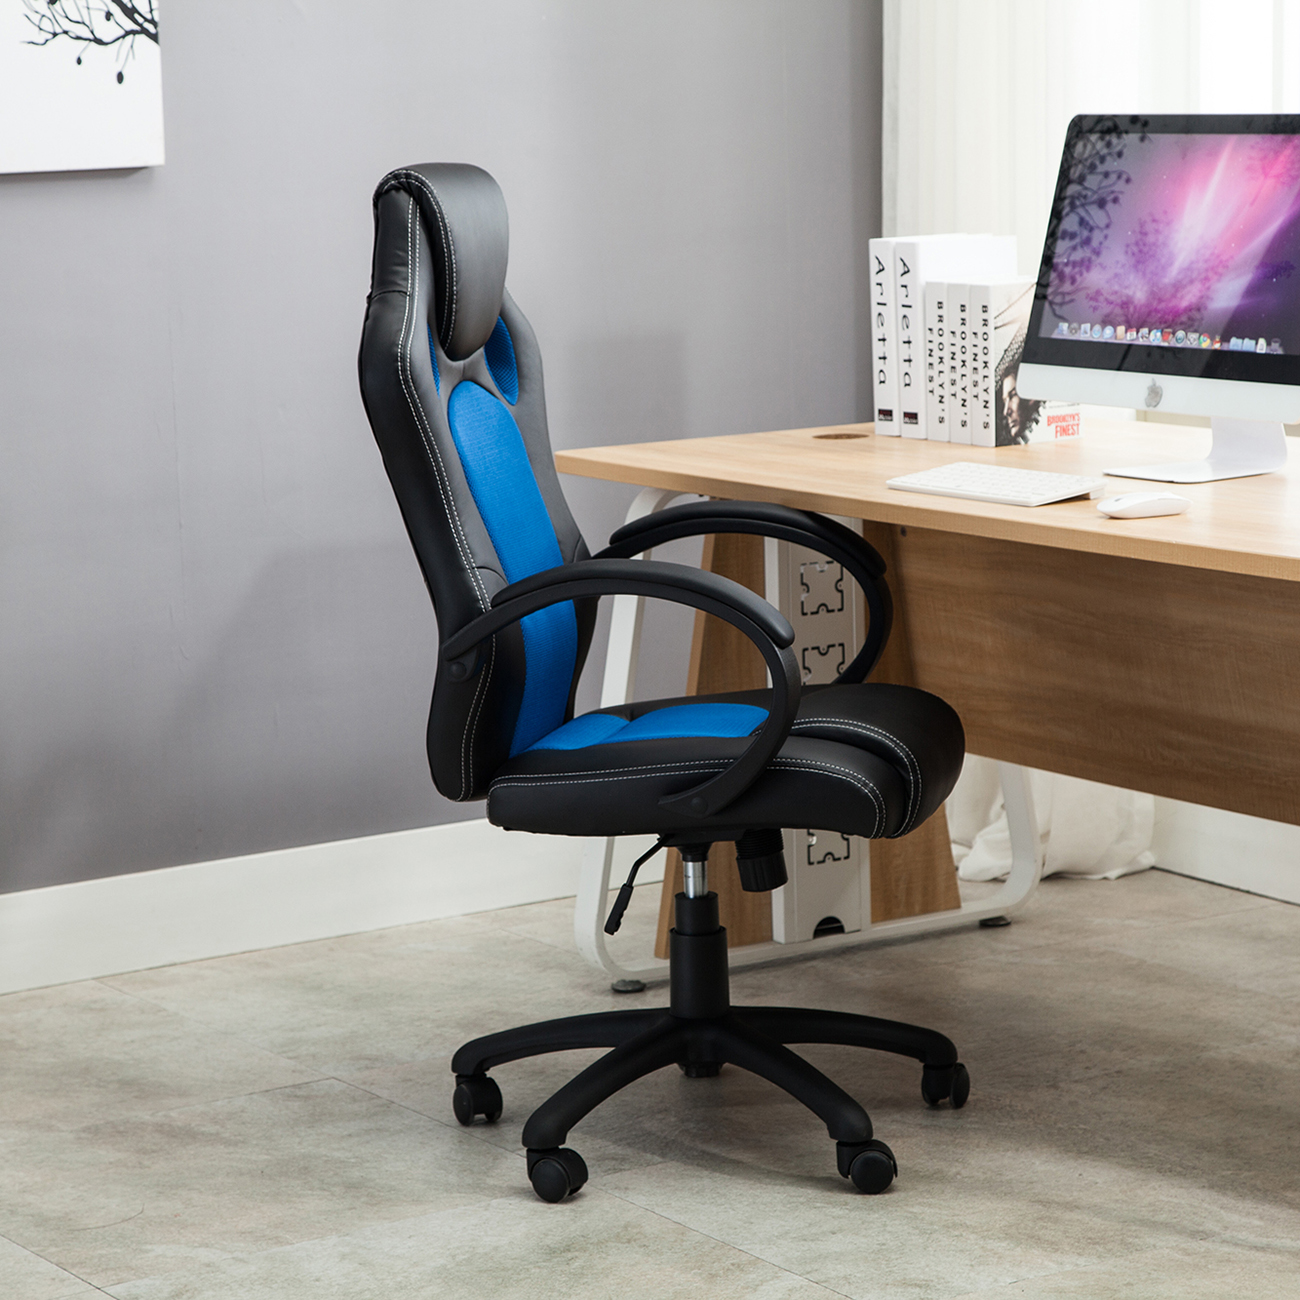 Desk Seat Details About High Back Race Car Style Bucket Seat Office Desk Chair Gaming Computer Chair New